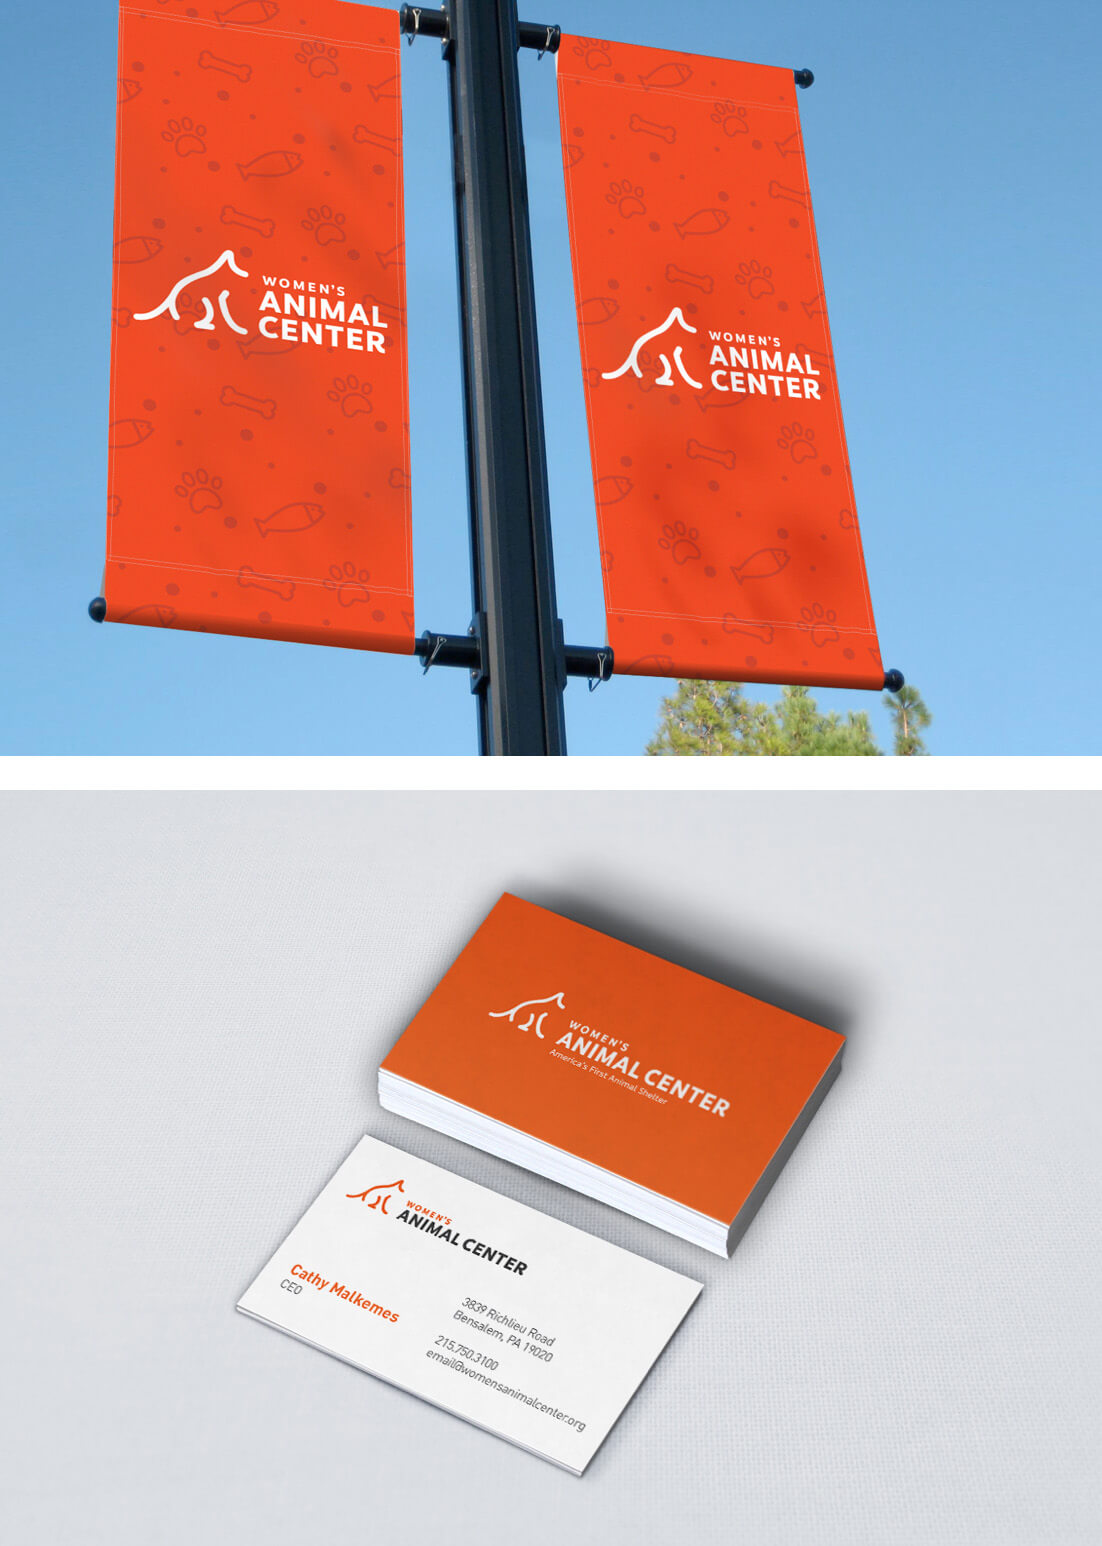 banner and business card with WAC logo